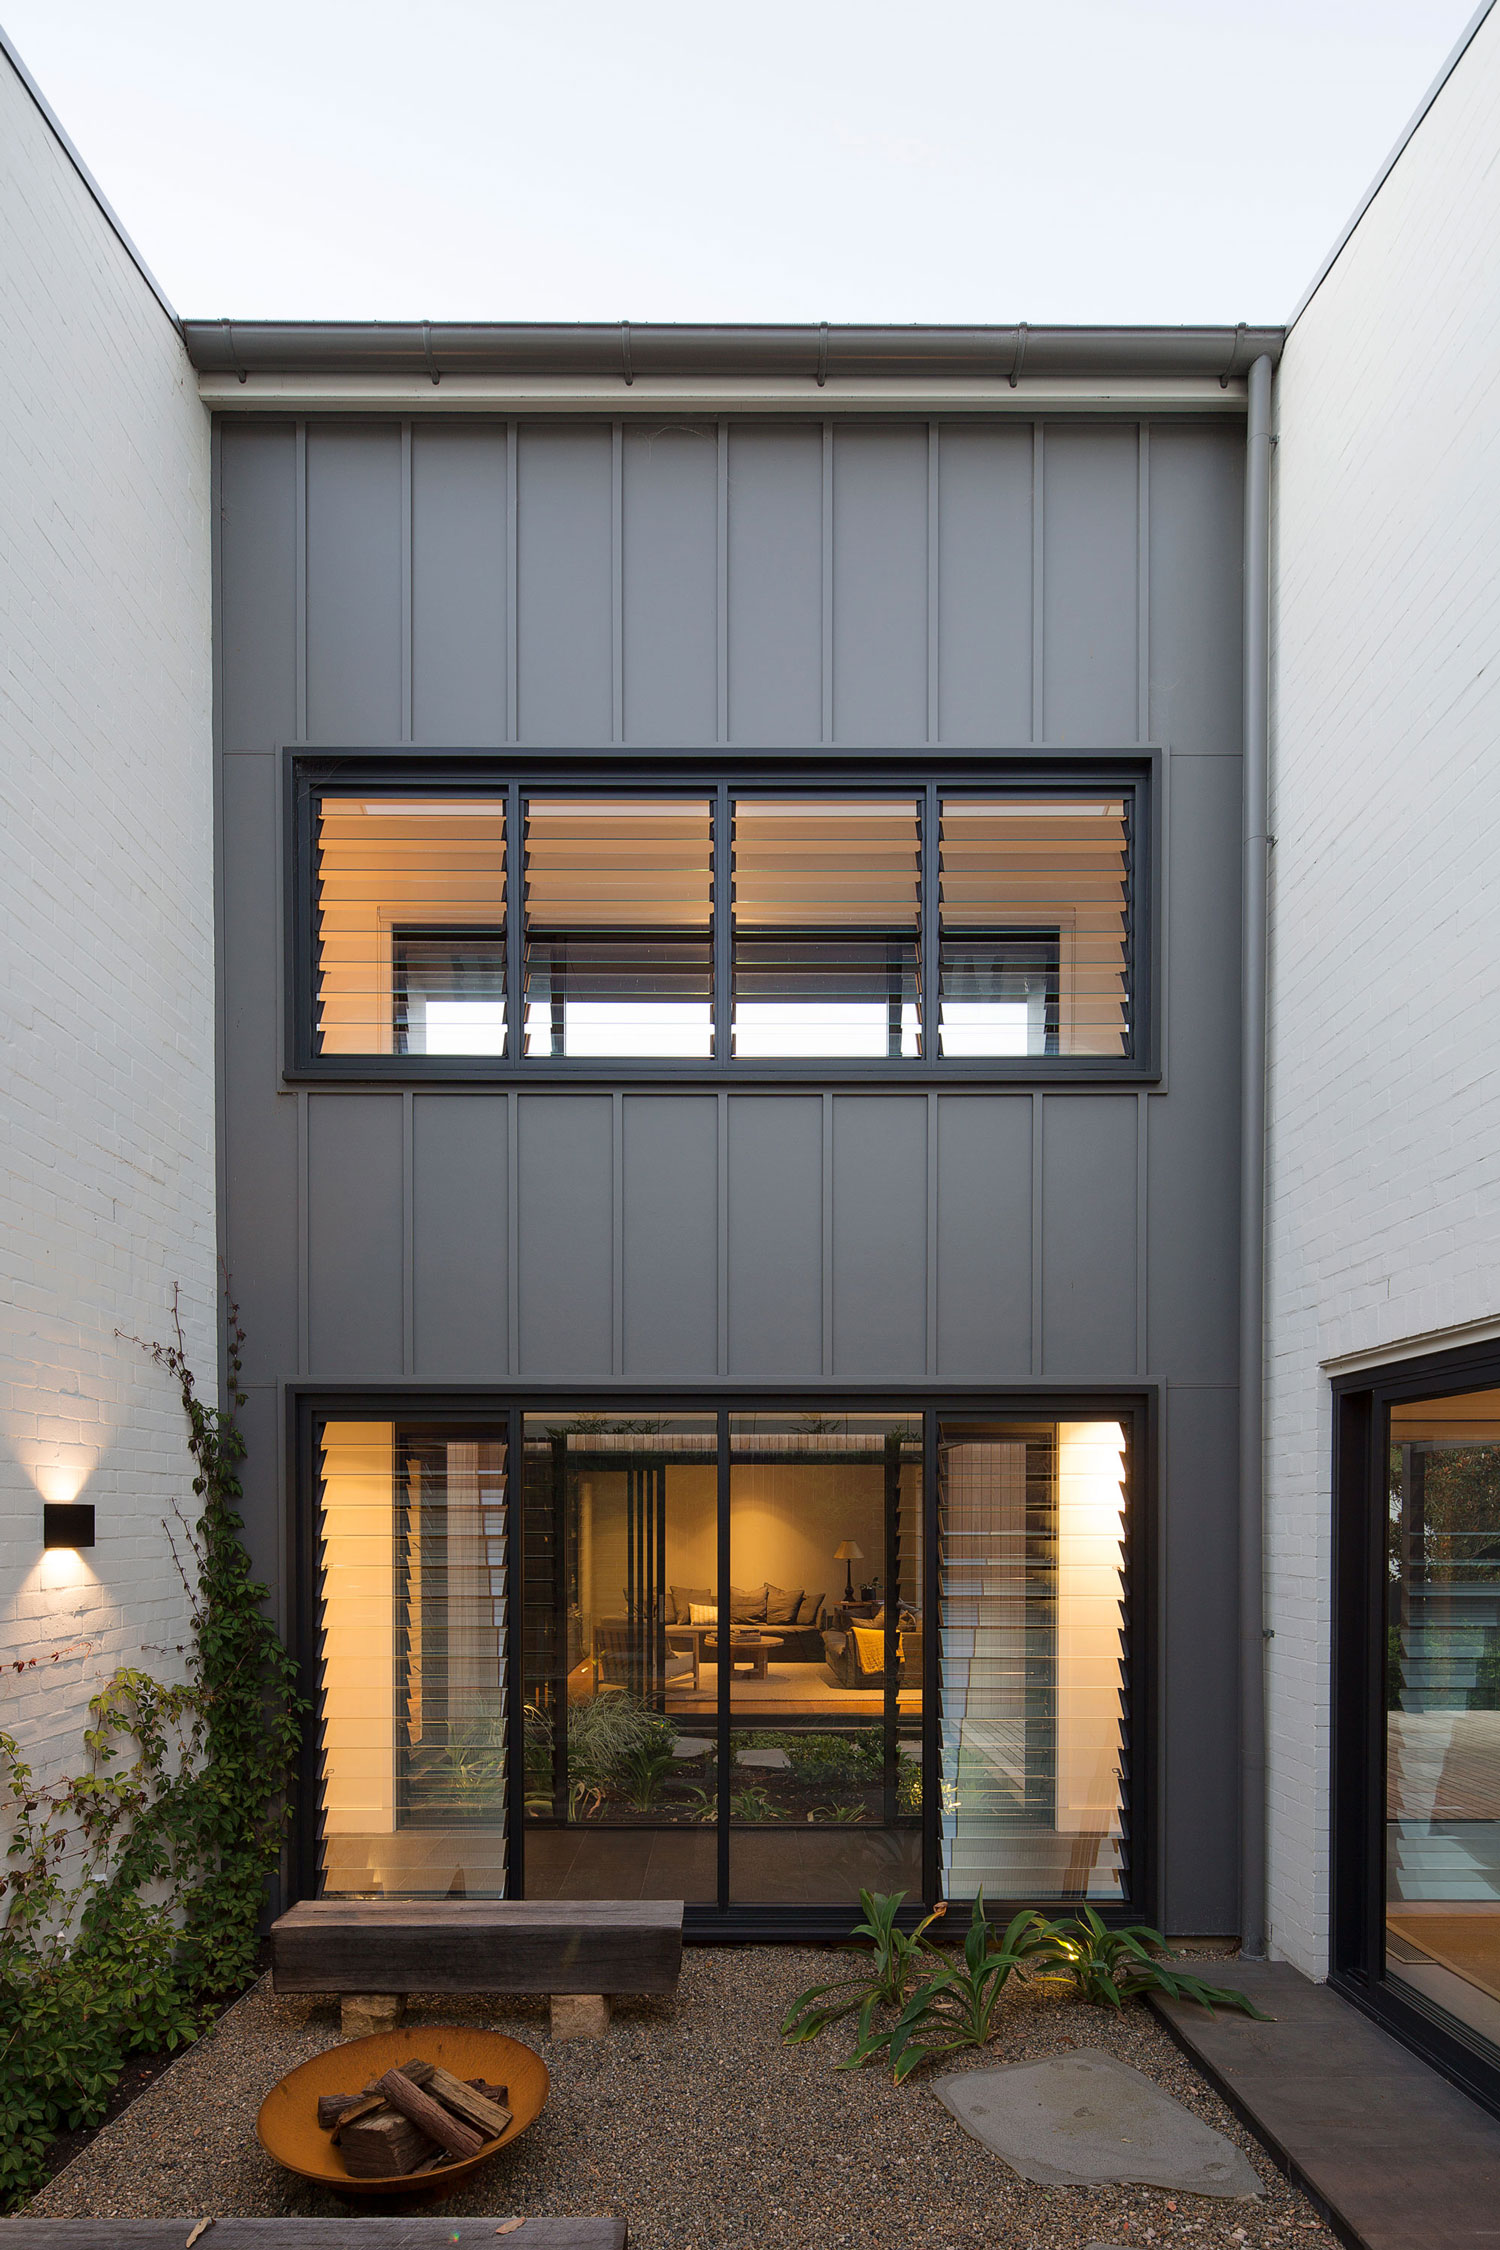 The Design Team Wanted To Ensure That The Houseu0027s Presence Was Modest And  Sympathetic To The Surrounding Older Residential Forms.